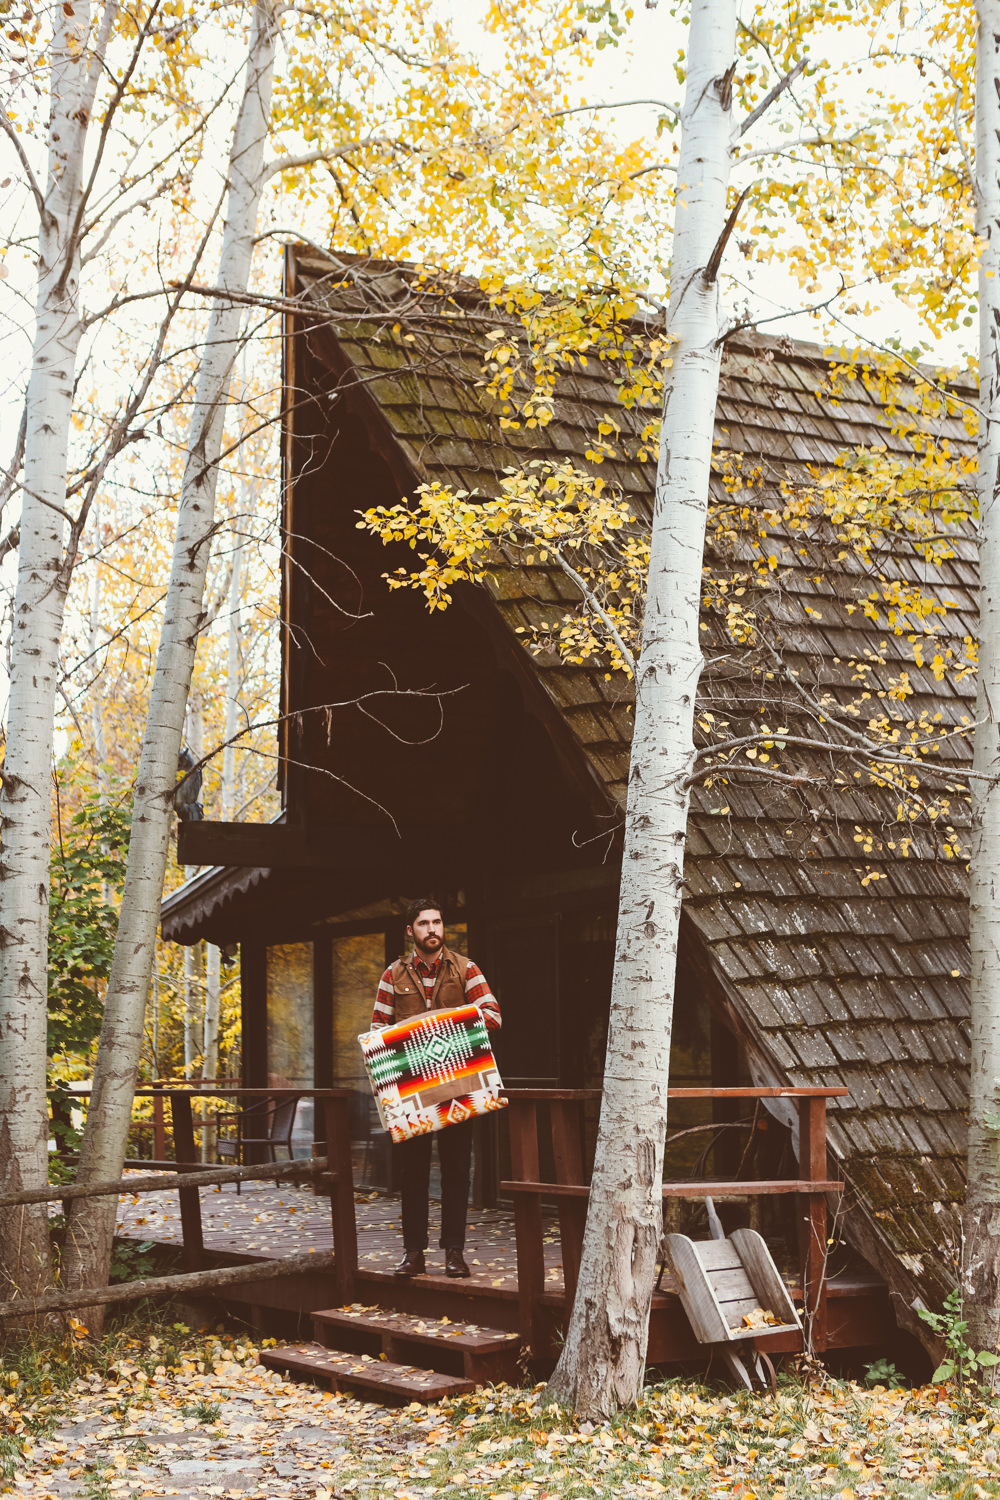 Brandon Burk by an A-frame cabin.